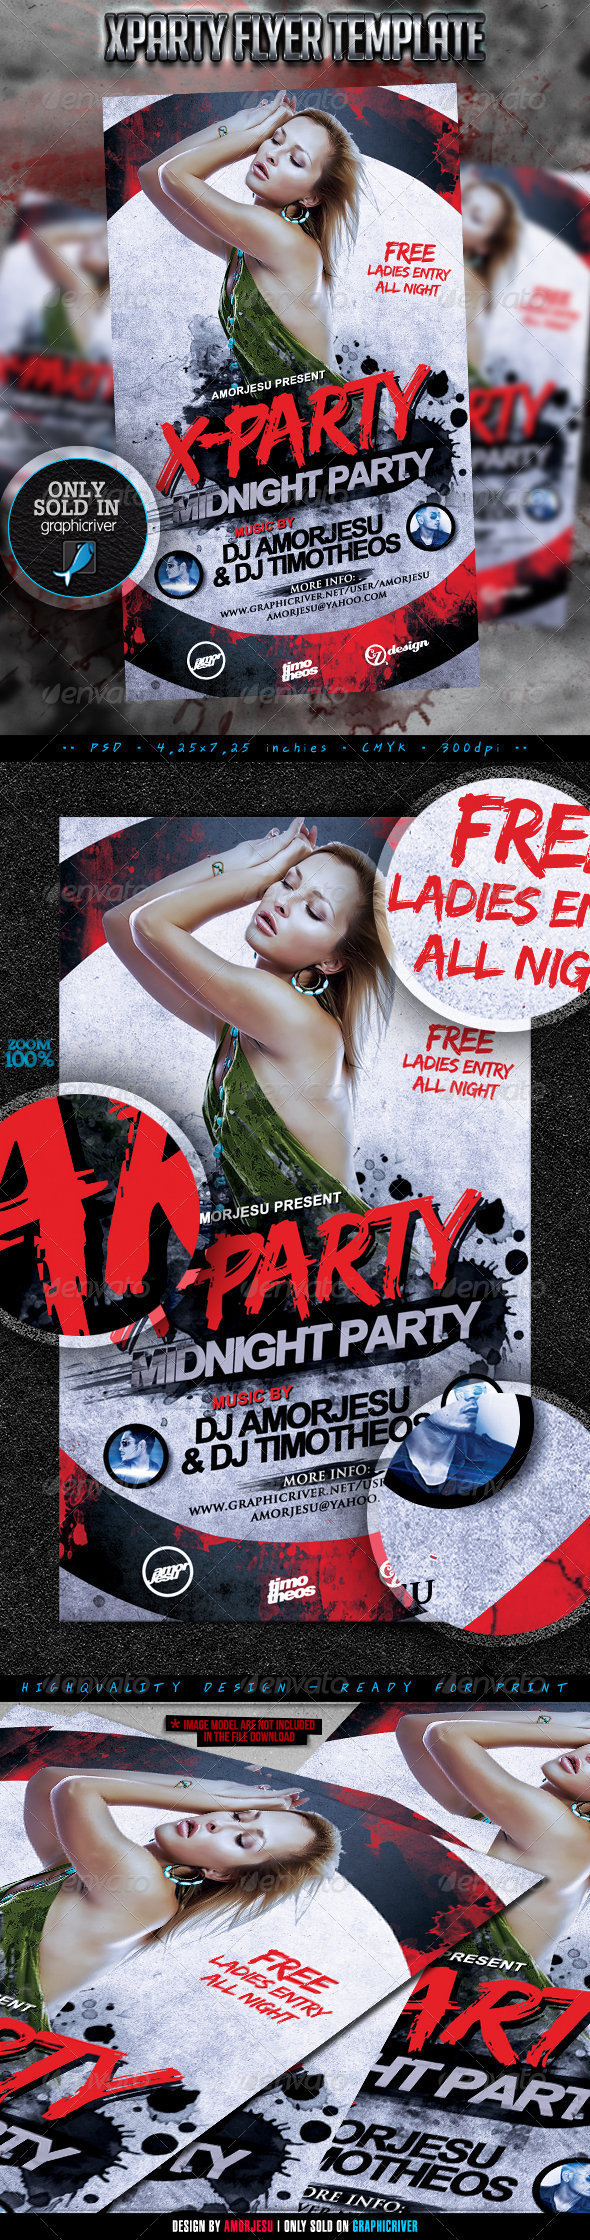 XParty Flyer Template - Clubs & Parties Events